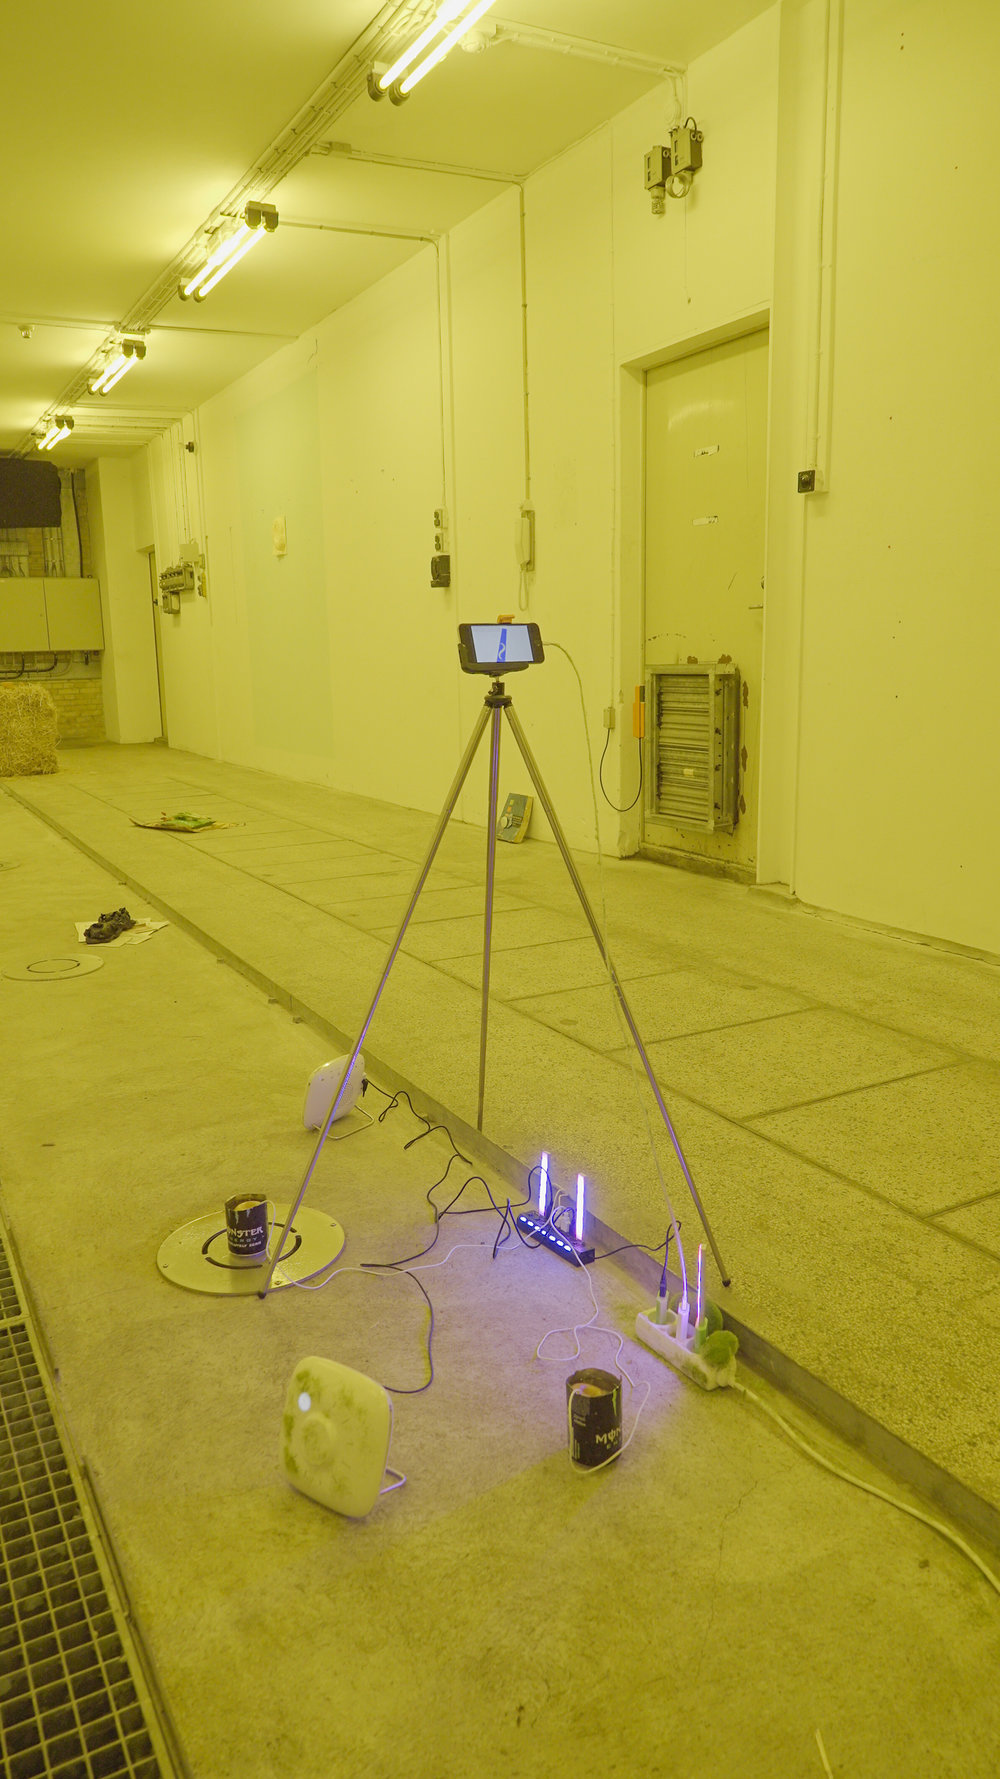 """Theodor Præst Nymark Jensen """"System of Nature,� 2018 (Tripod, Iphone 6 with charger (playing demo video from Openworm), sleeping machine 2X, faux grass, faux moss stone, humidifier, Monster Energy, grow light, USB splitter). Photo: Frej Volander & Theodor Præst Nymark Jensen."""